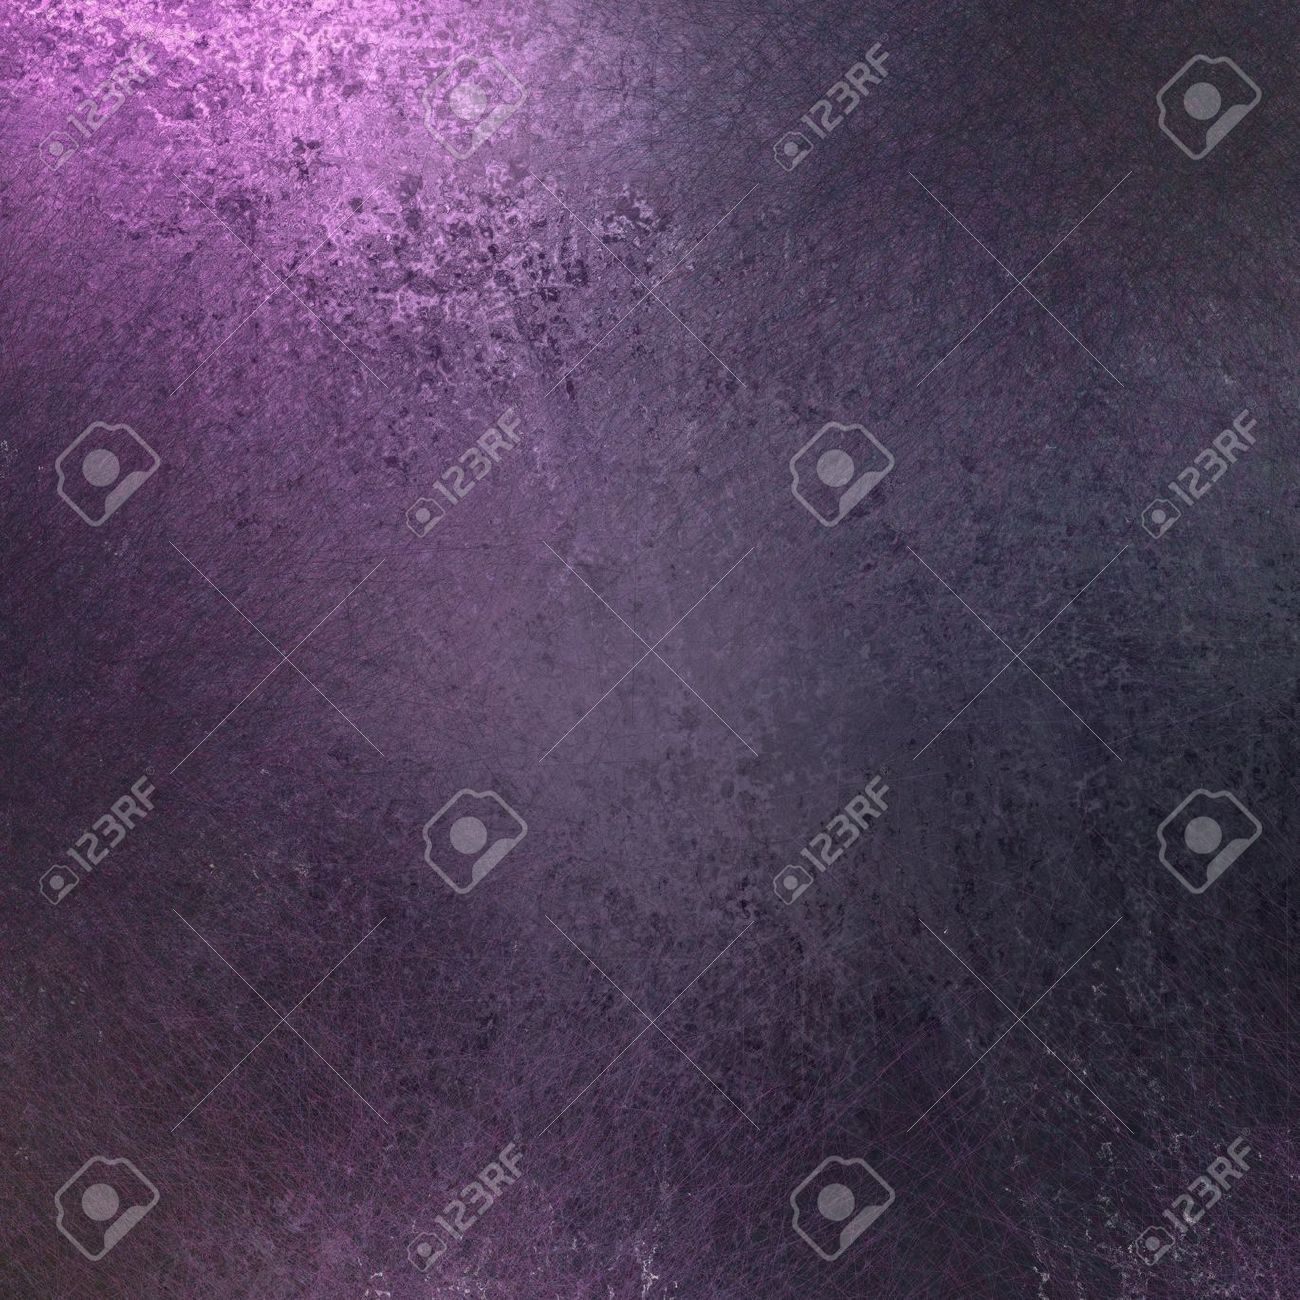 deep purple background color with old worn grunge texture and soft lighting with copy space Stock Photo - 12623983